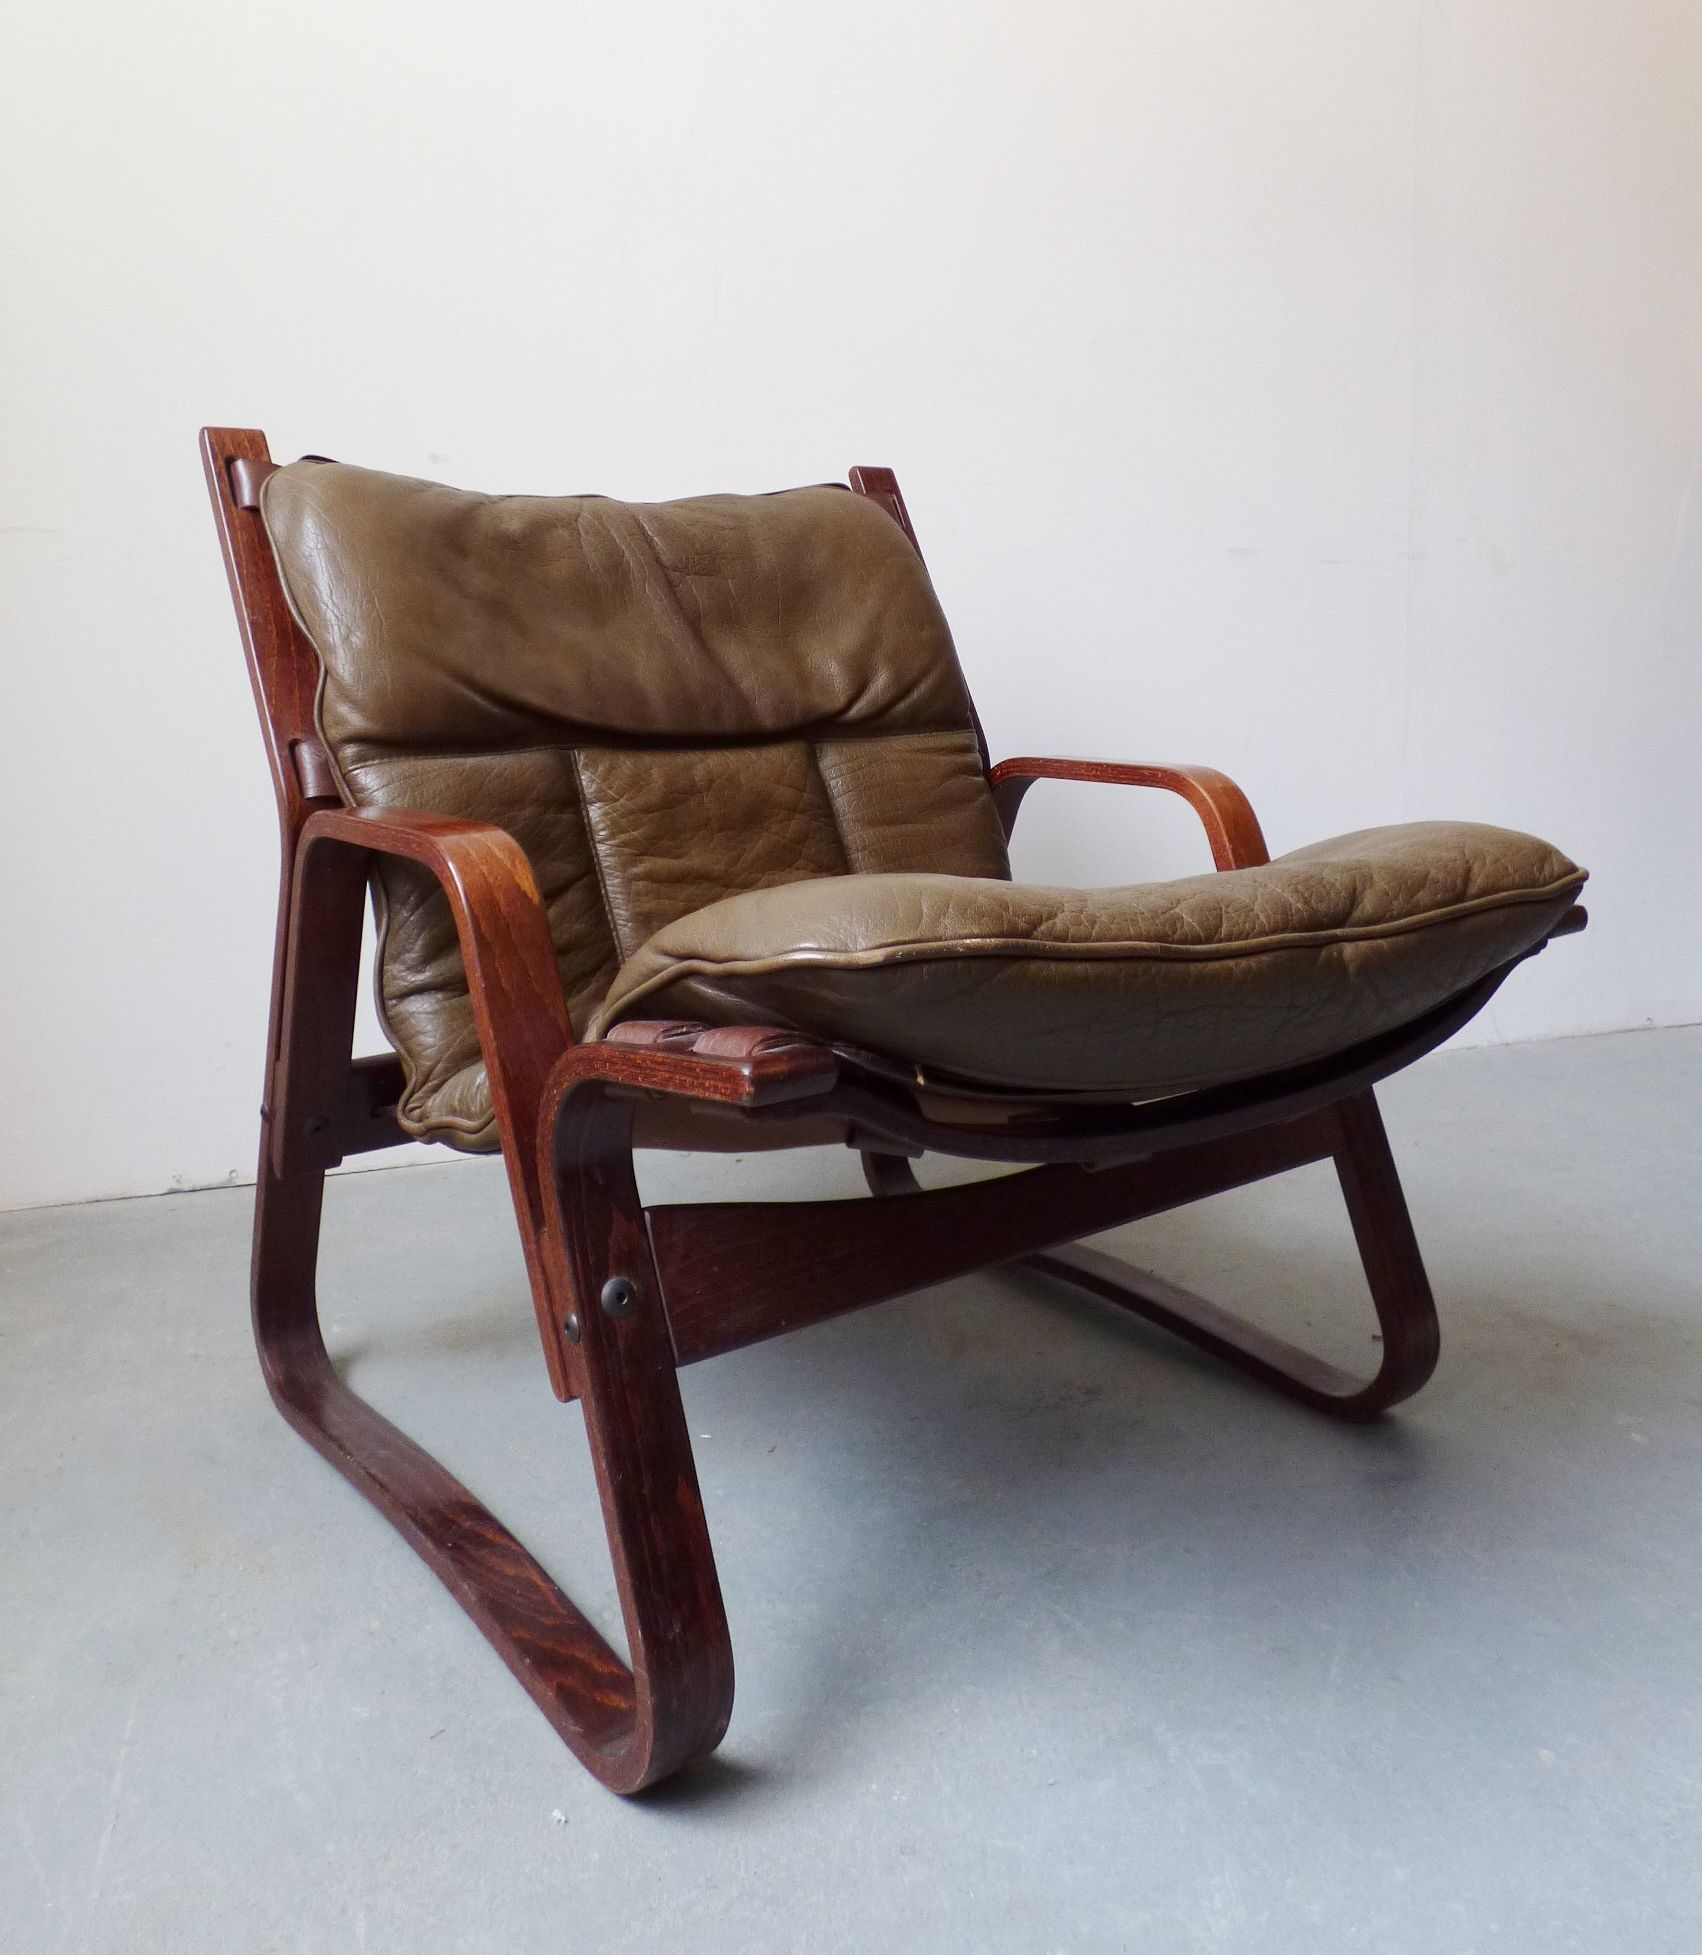 1970s Scandinavian bentwood chair with olive leather cushions